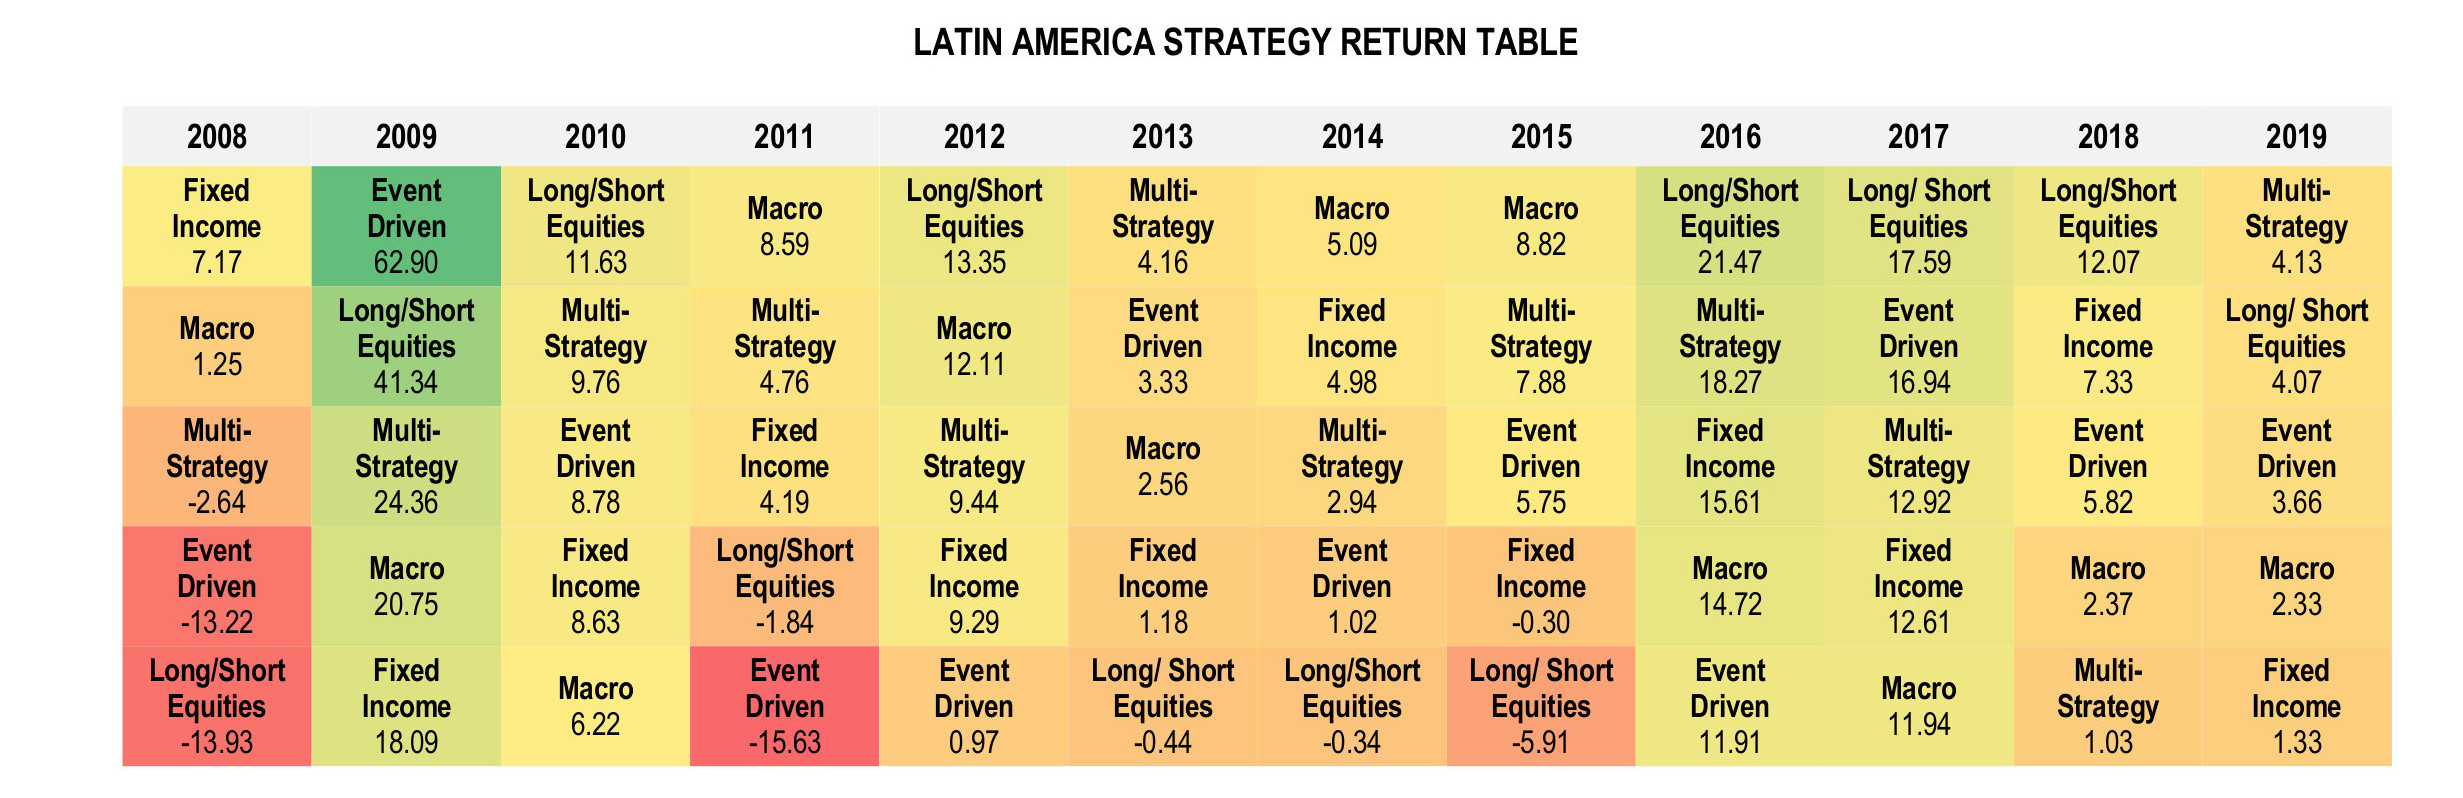 Latin American Hedge Funds Infographic May 2019 - Strategy Return Table